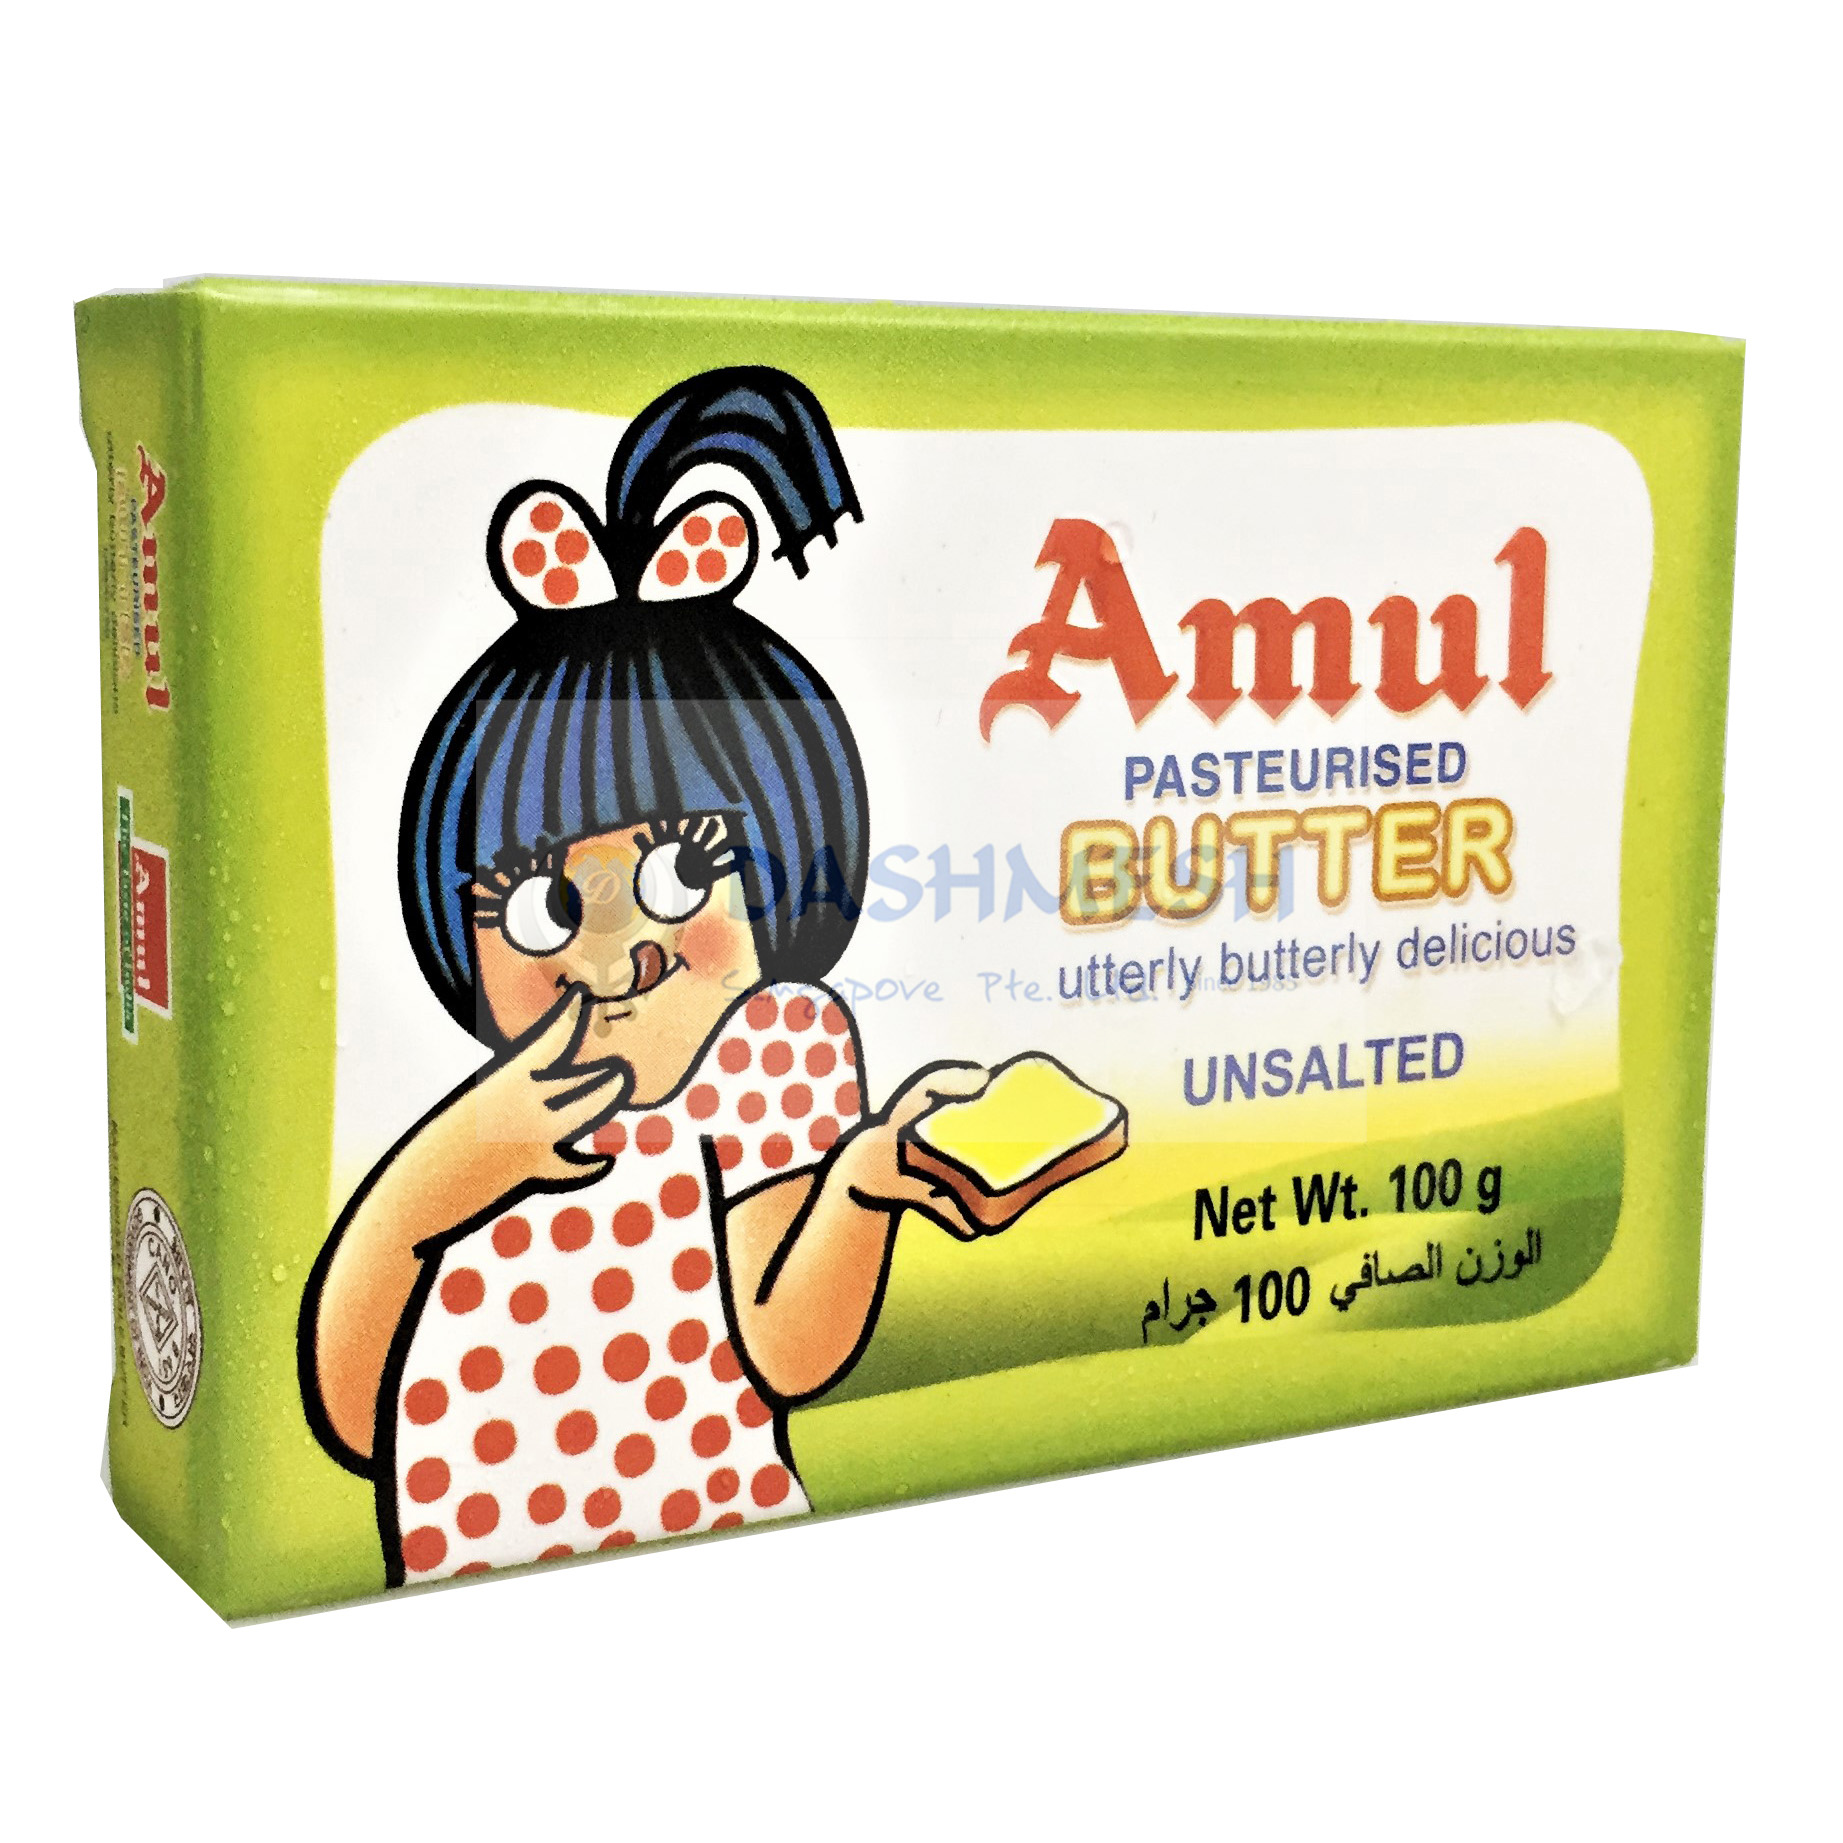 Amul Butter (Unsalted) 100g & 500g